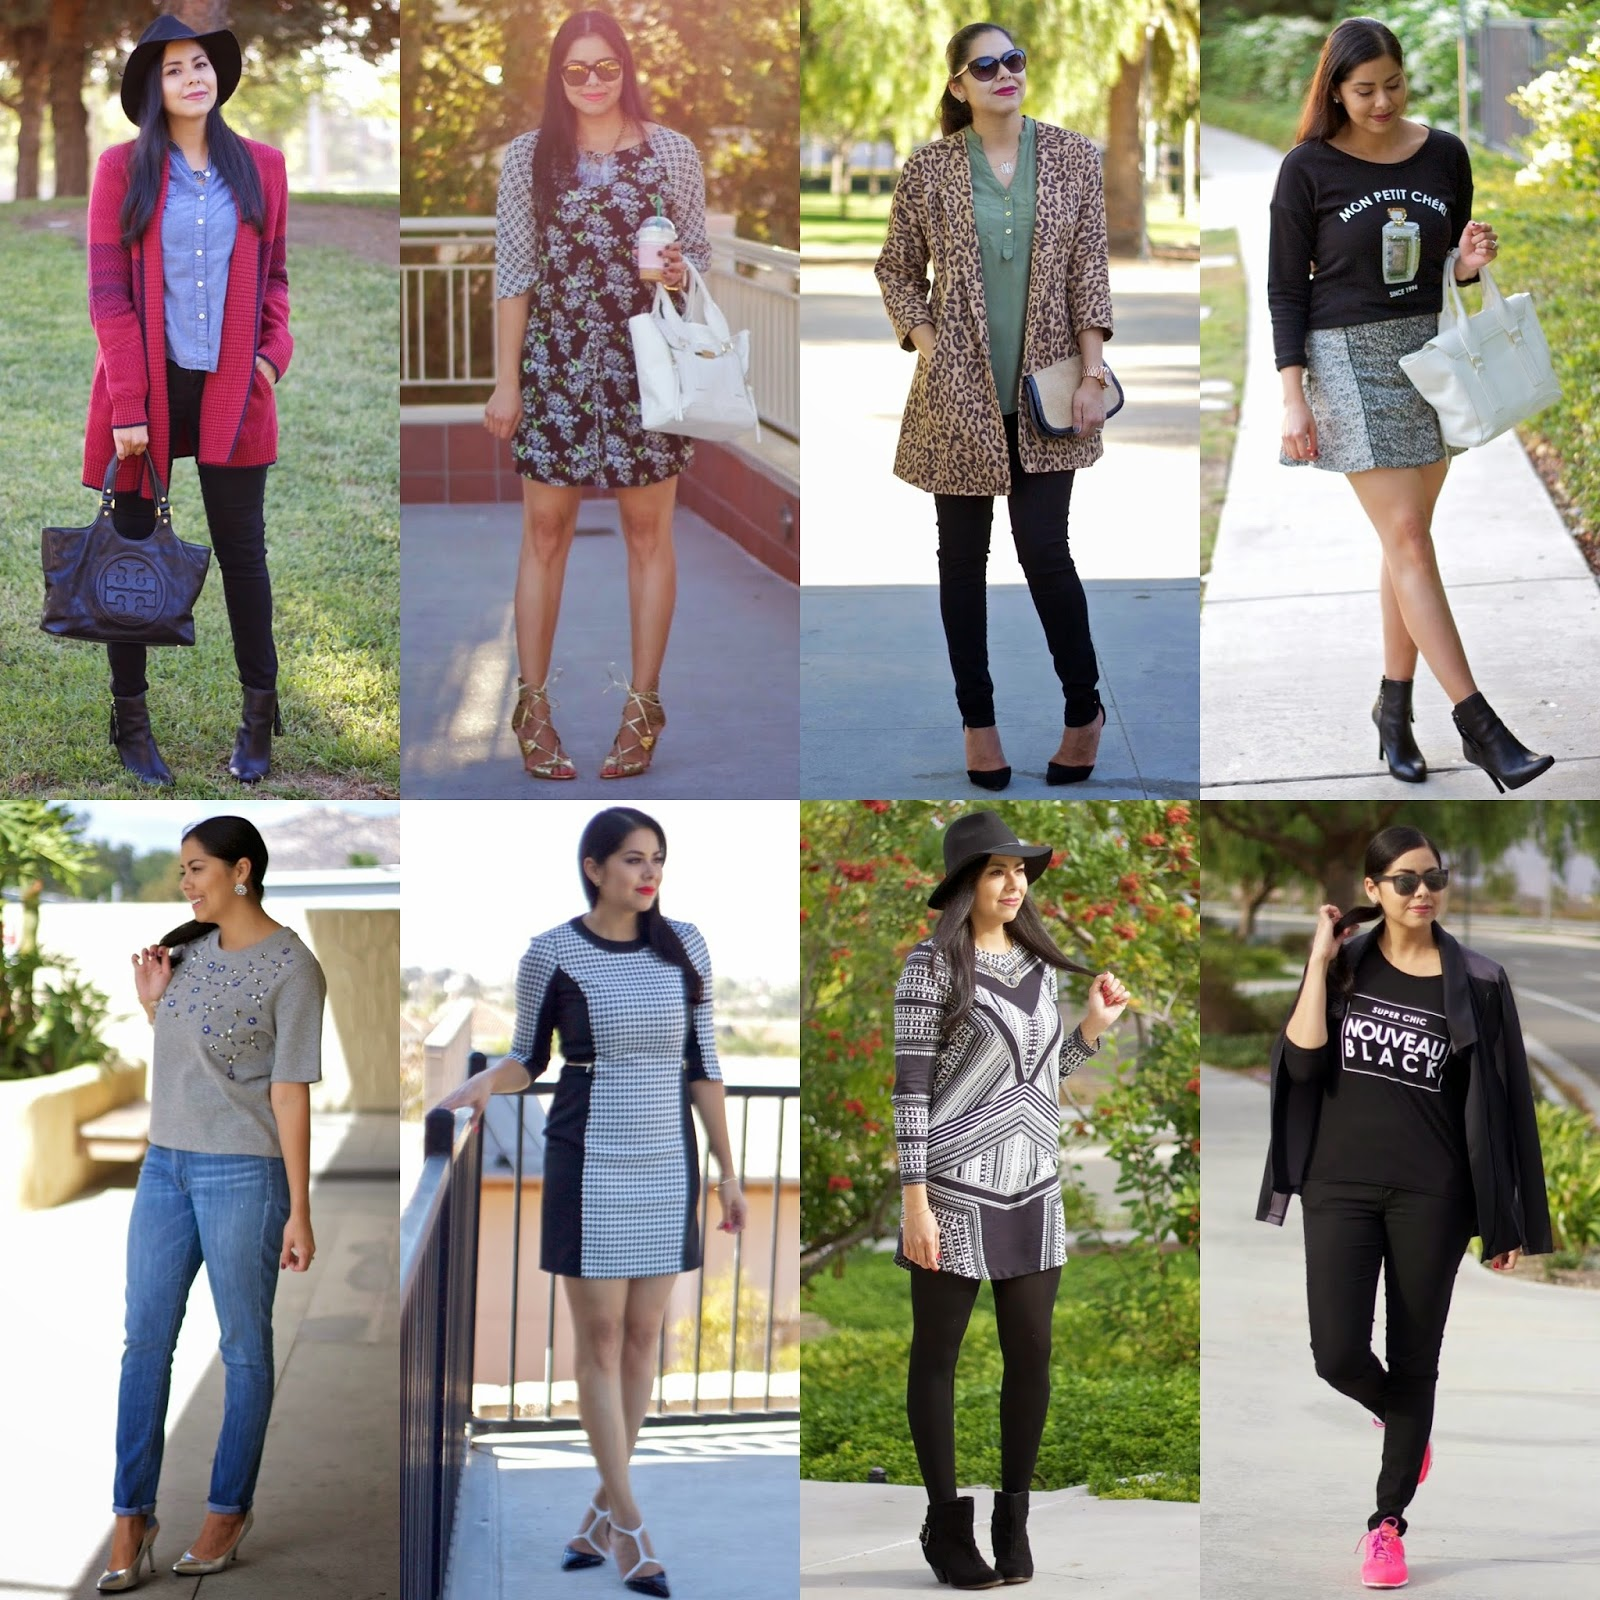 outfit recap, october 2014 outfit recap, san diego blogger, san diego fashion blogger, san diego style blogger, socal fashion blogger, socal blogger, sd blogger, california blogger, latina blogger, west coast blogger